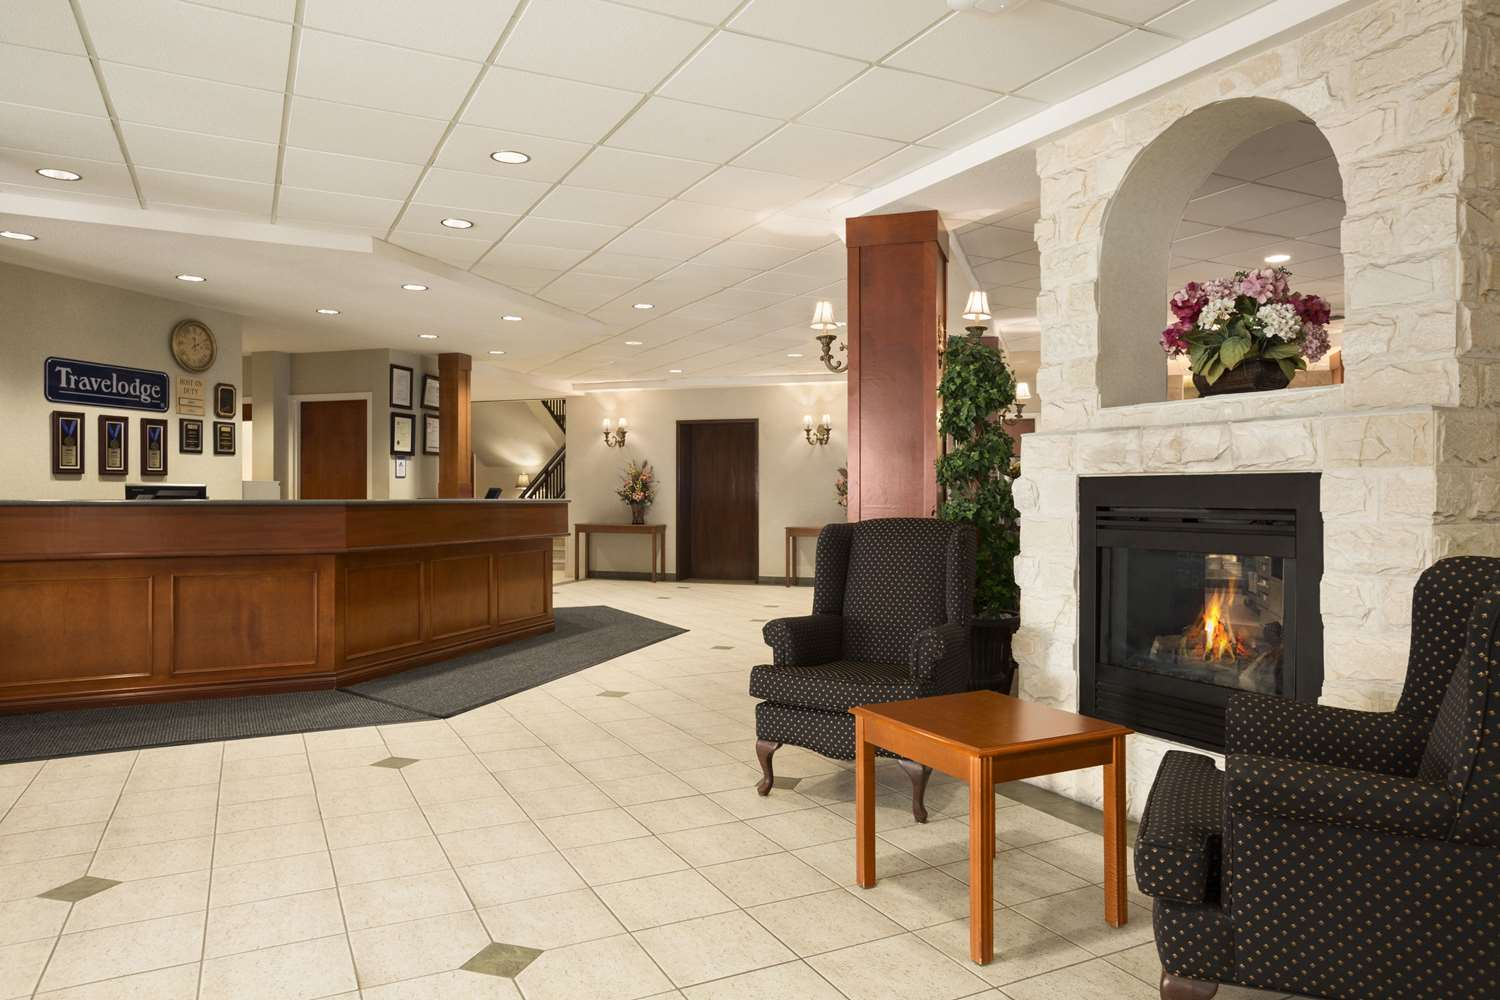 Lobby - Travelodge Strathmore